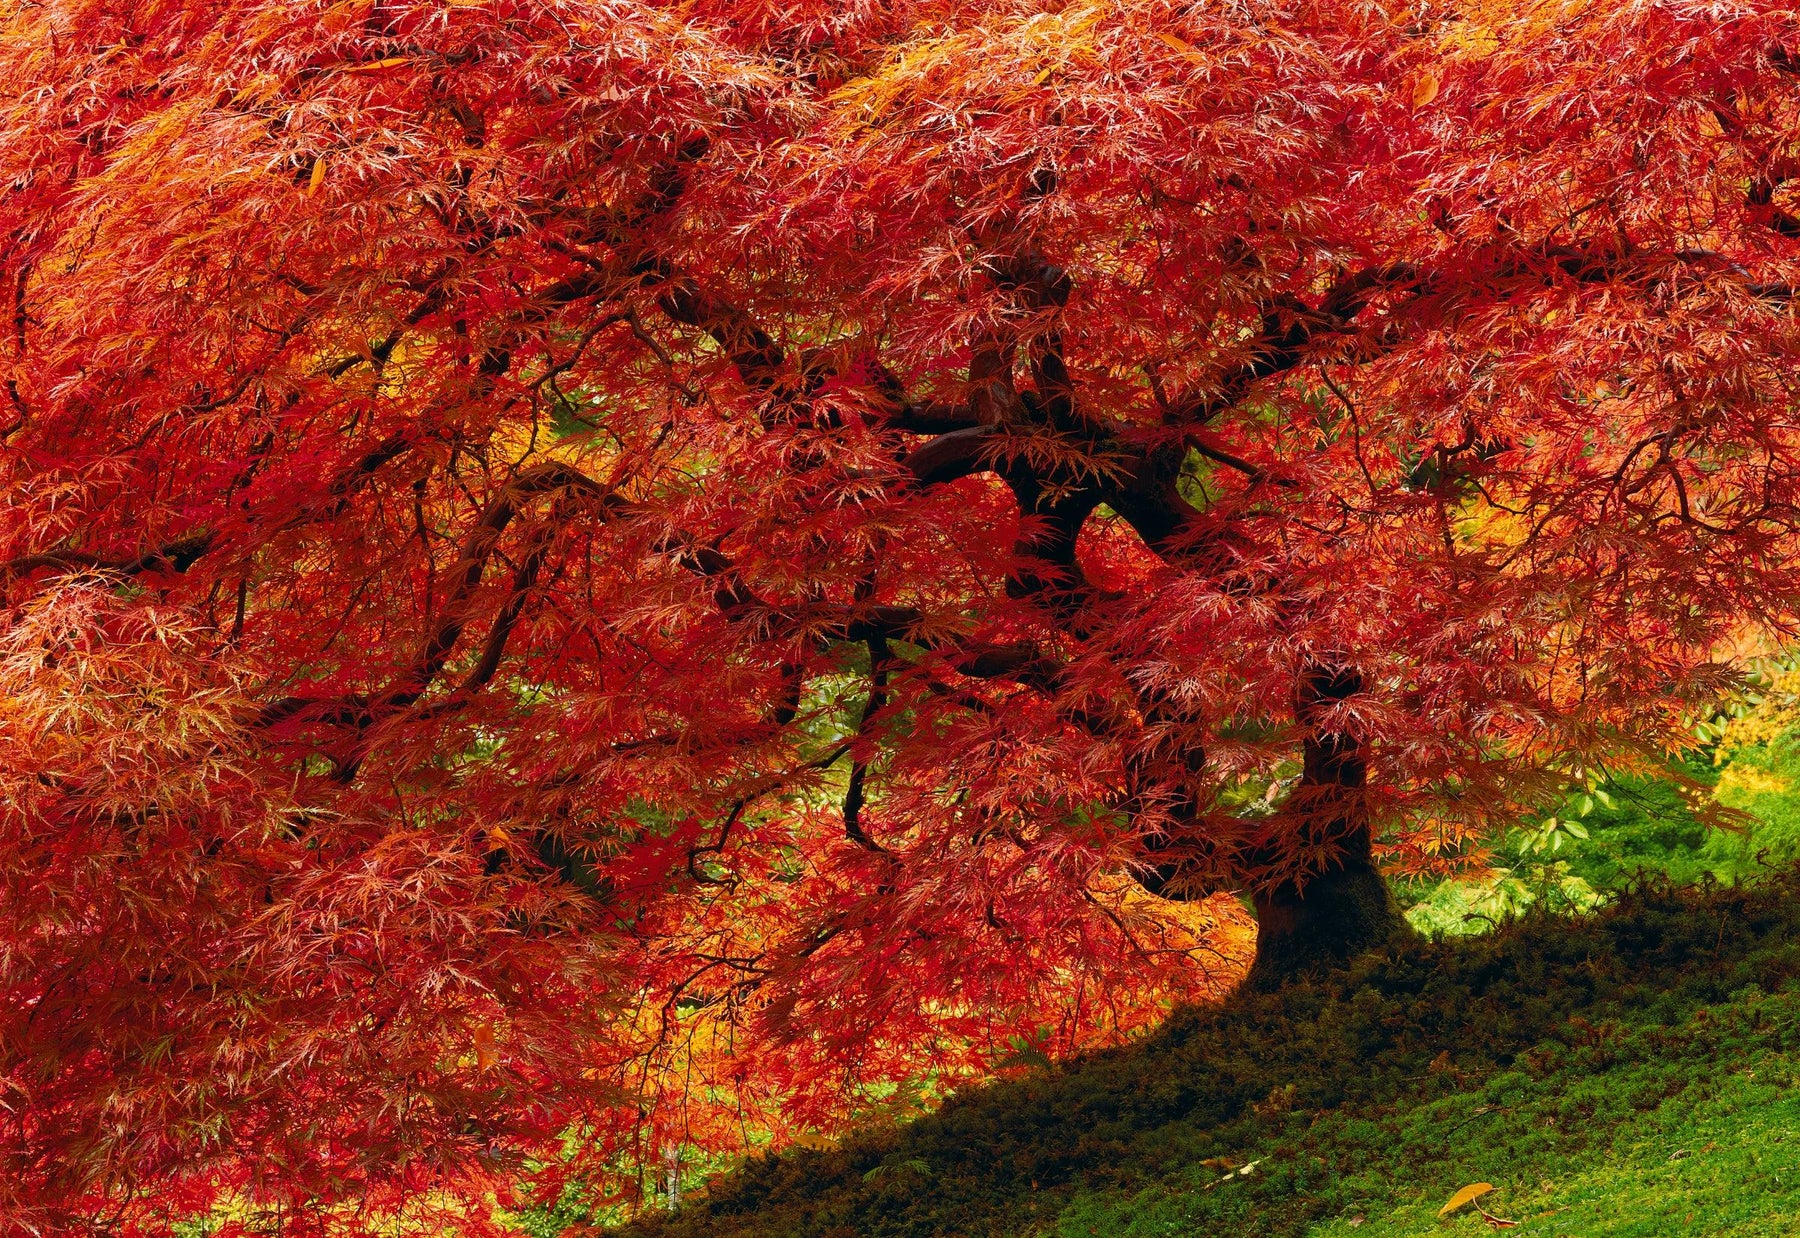 Japanese Maple tree filled with red leaves on a green moss hill in Oregon